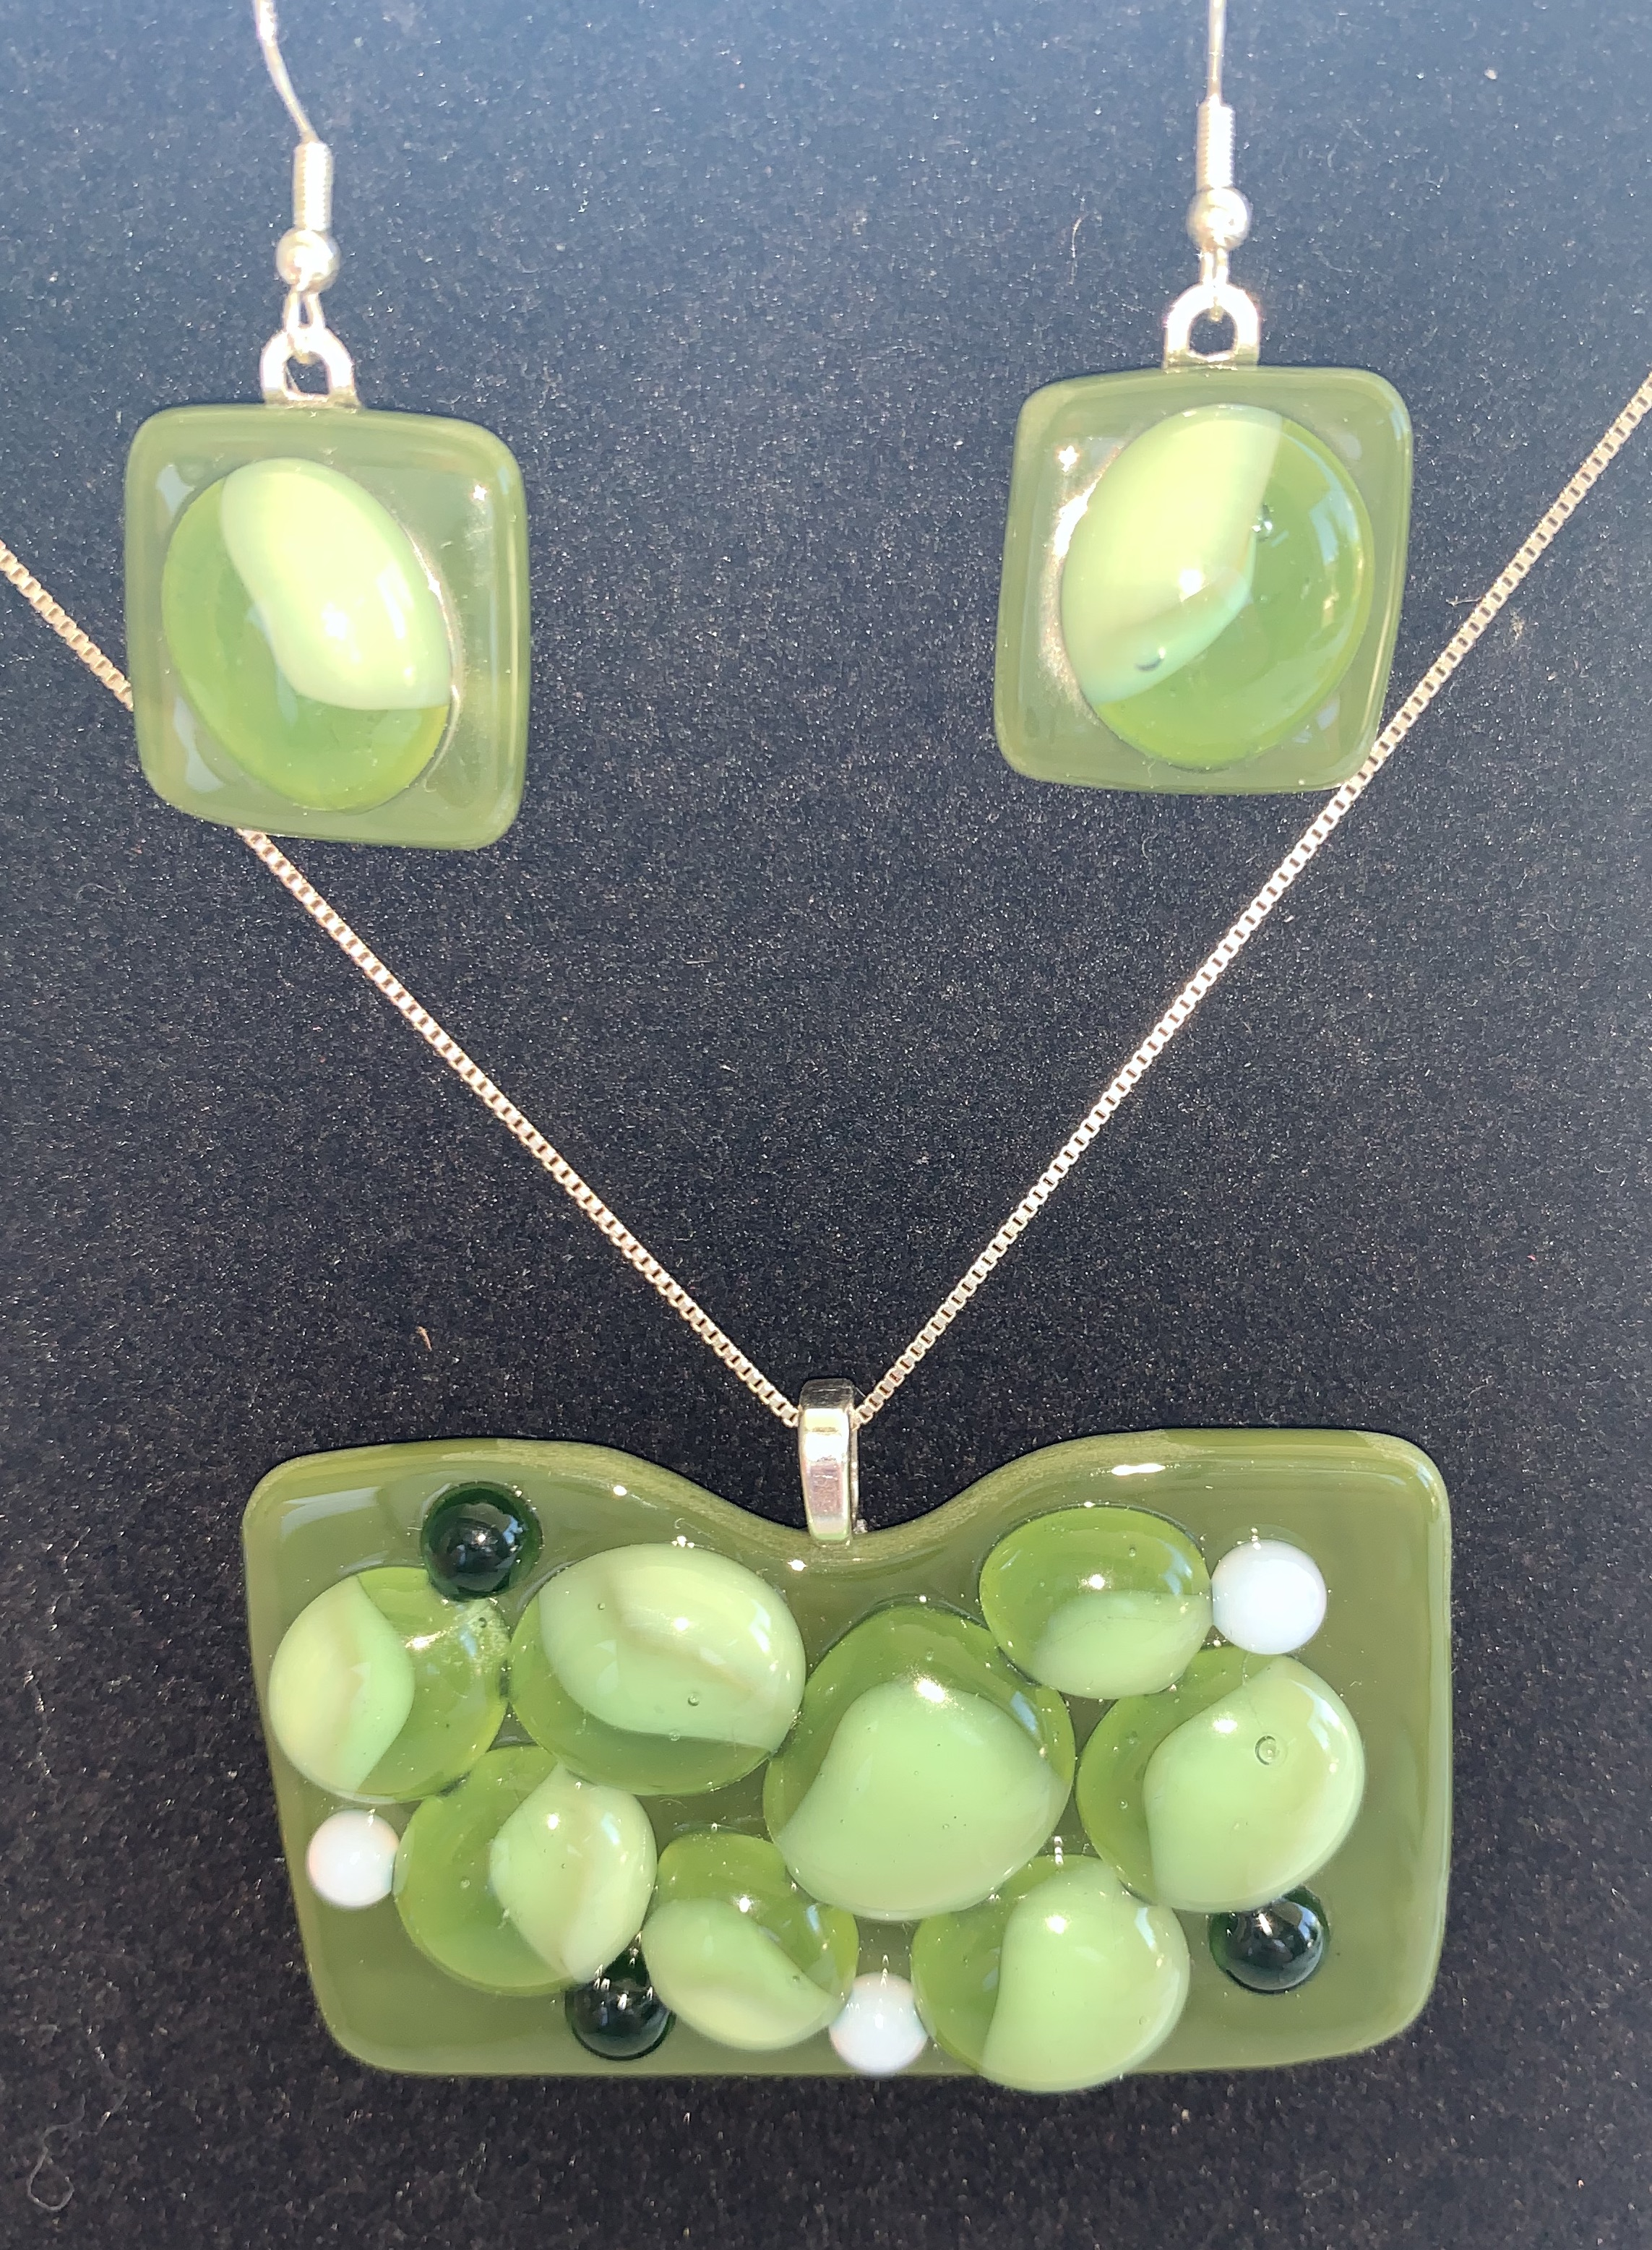 Green Necklace and Earrings - $42 Set